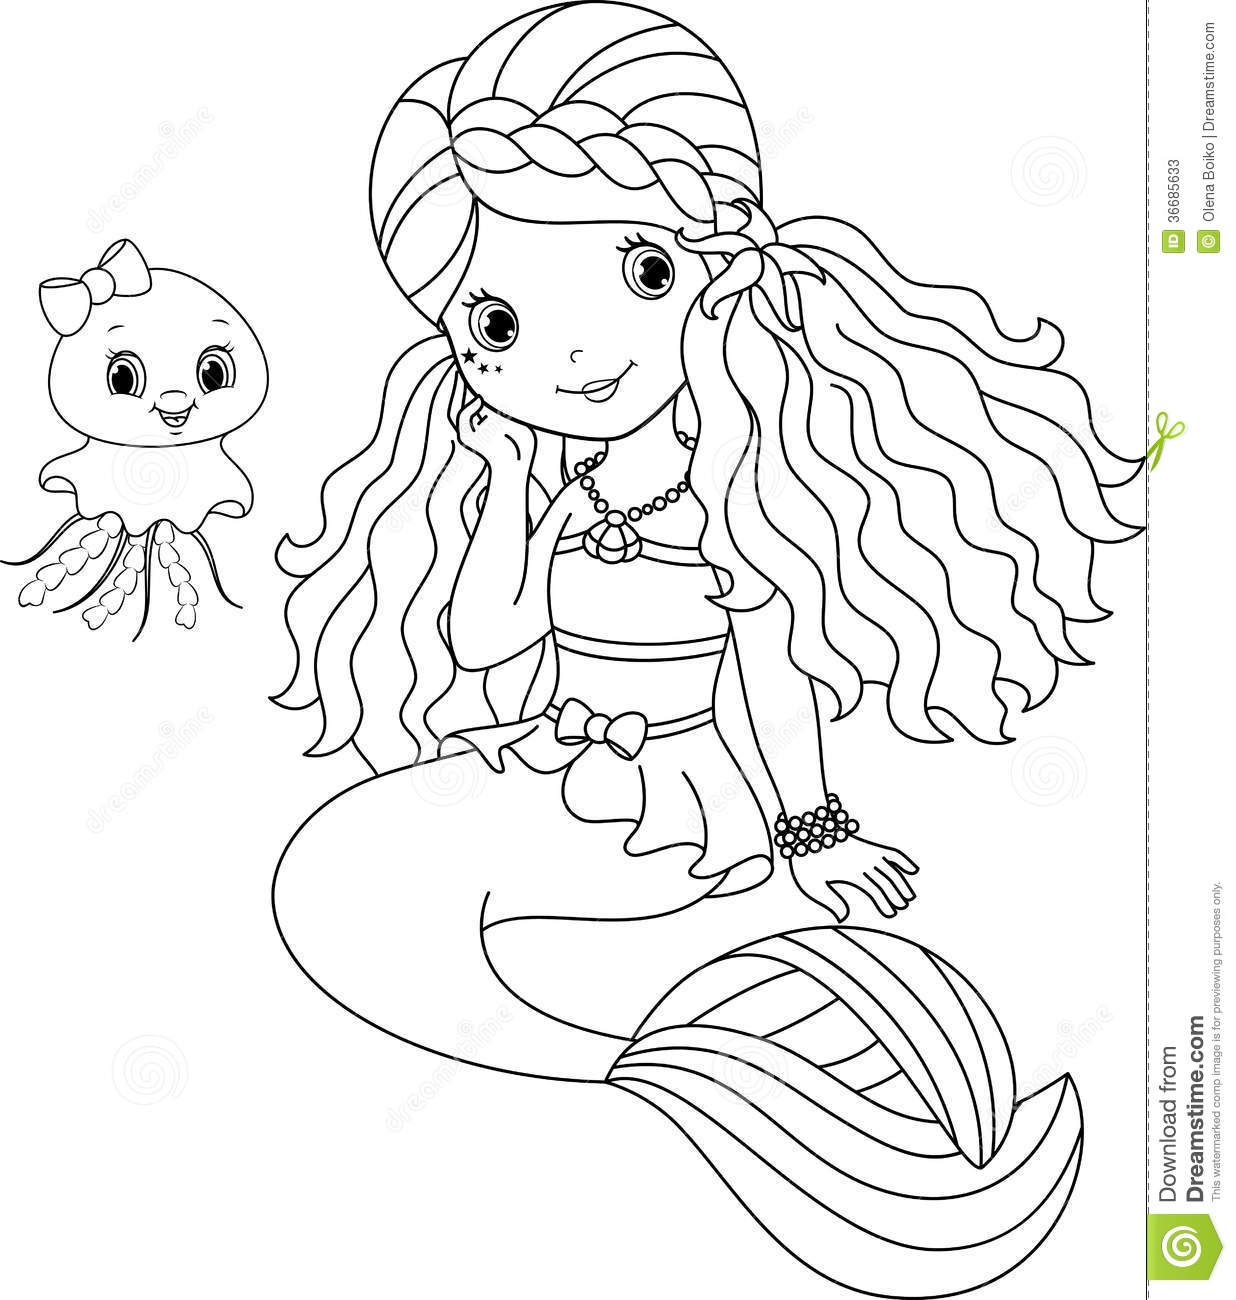 Me mermaid coloring pages for toddlers - Me Mermaid Coloring Pages For Toddlers 48